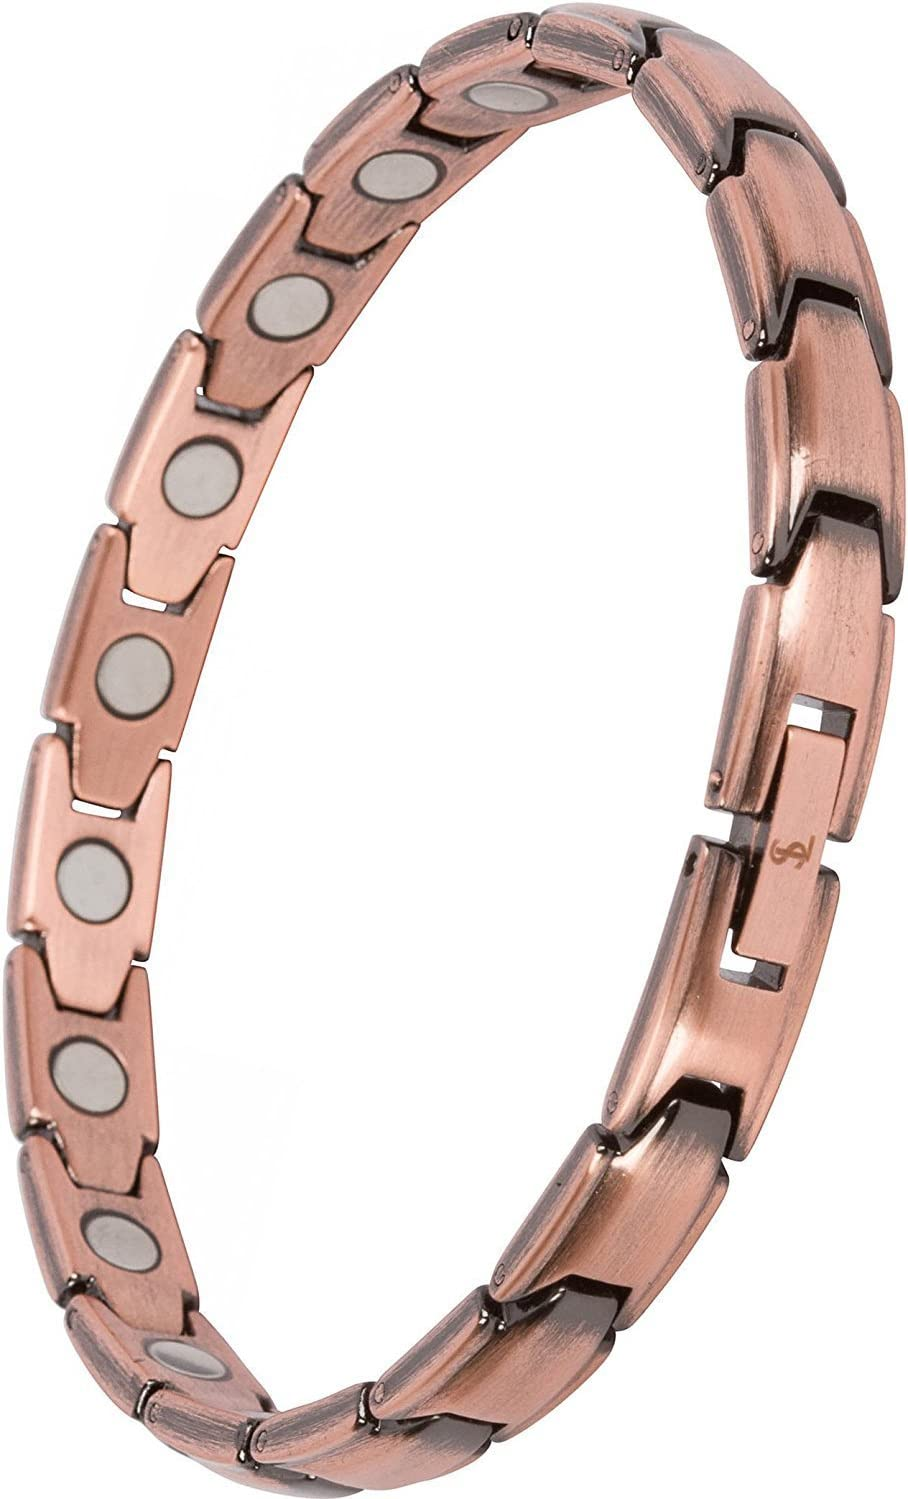 Beautiful Pure Copper Magnetic bracelet women arthritis pain relief balance energy stress anxiety relief gift for her Mother/'s Day gift